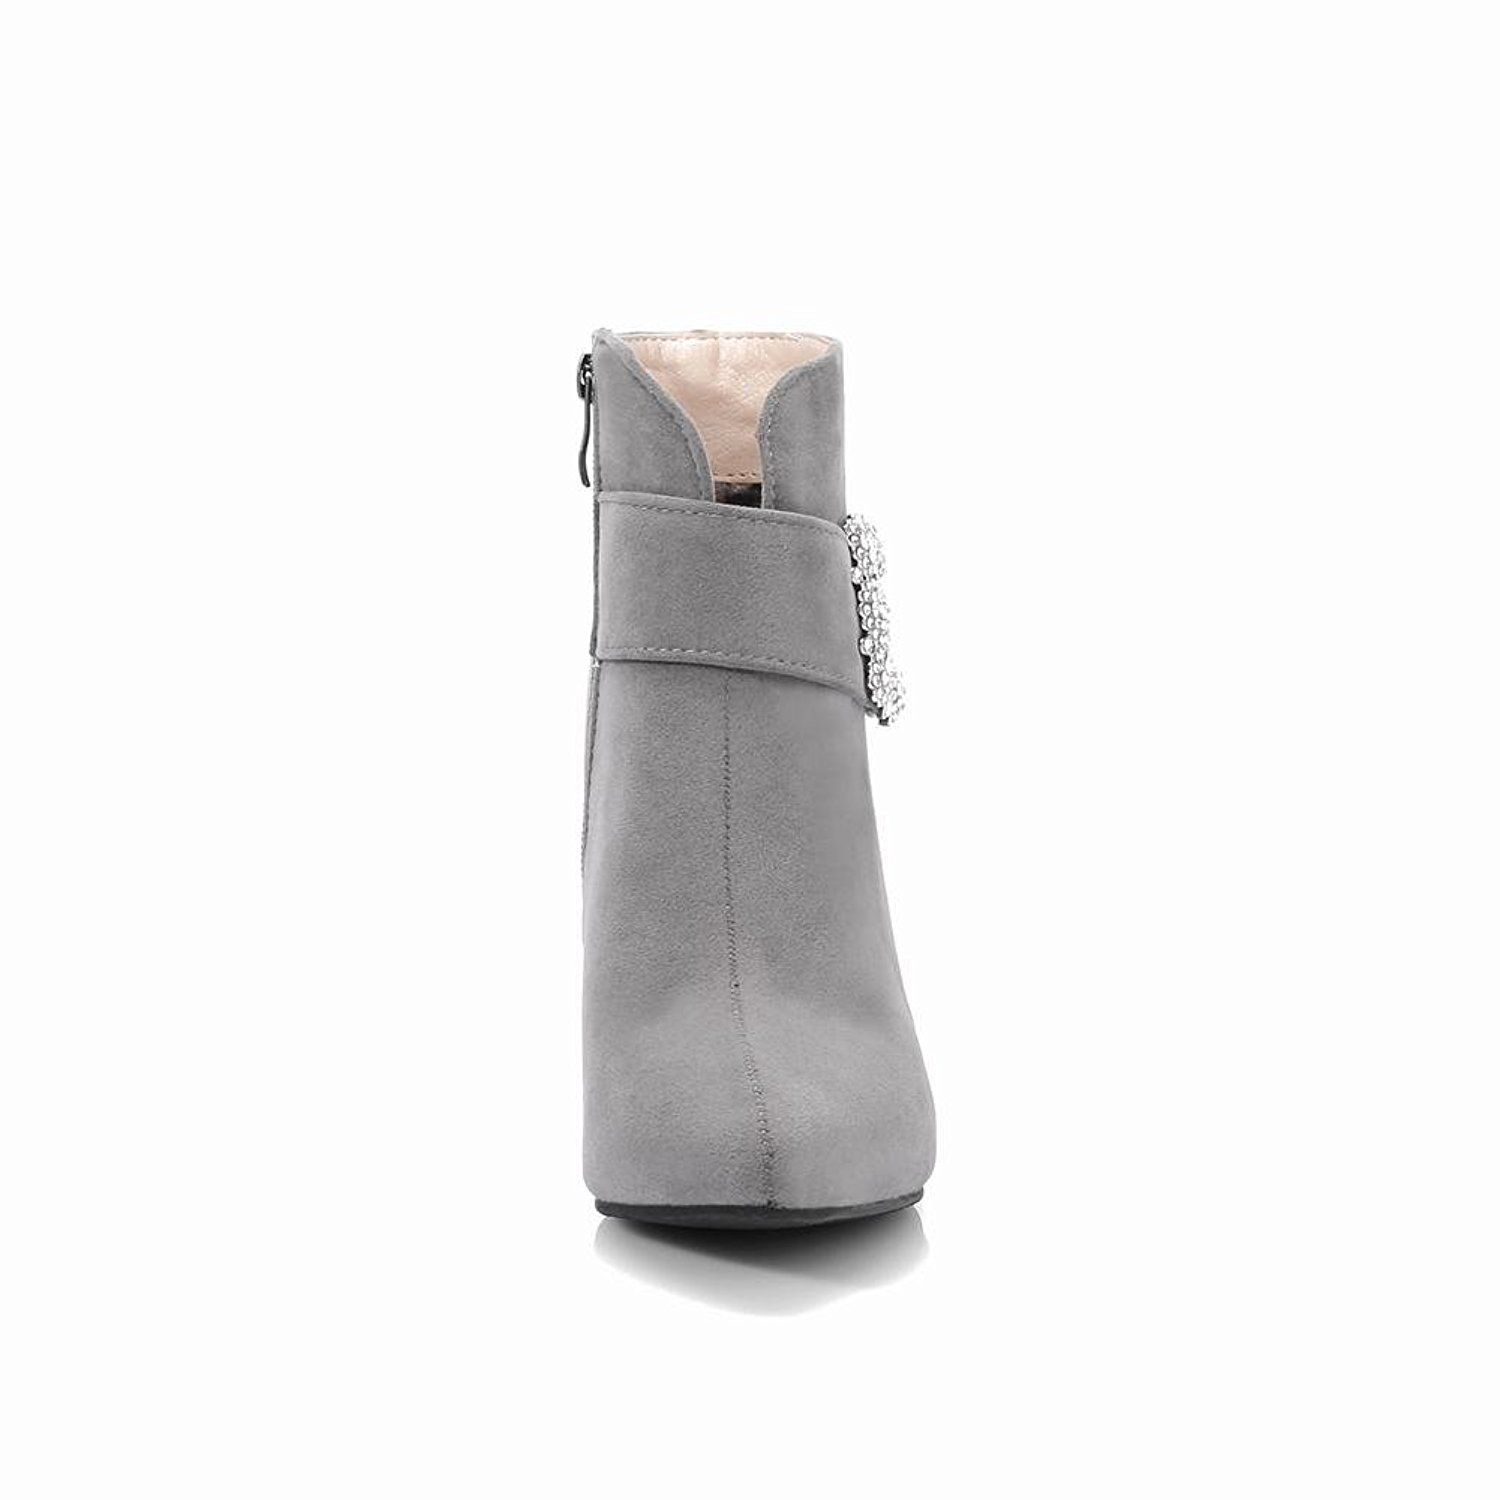 468869c28e4 Latasa Women's Pointed-toe Kitten Heel Ankle Boots -- Visit the ...